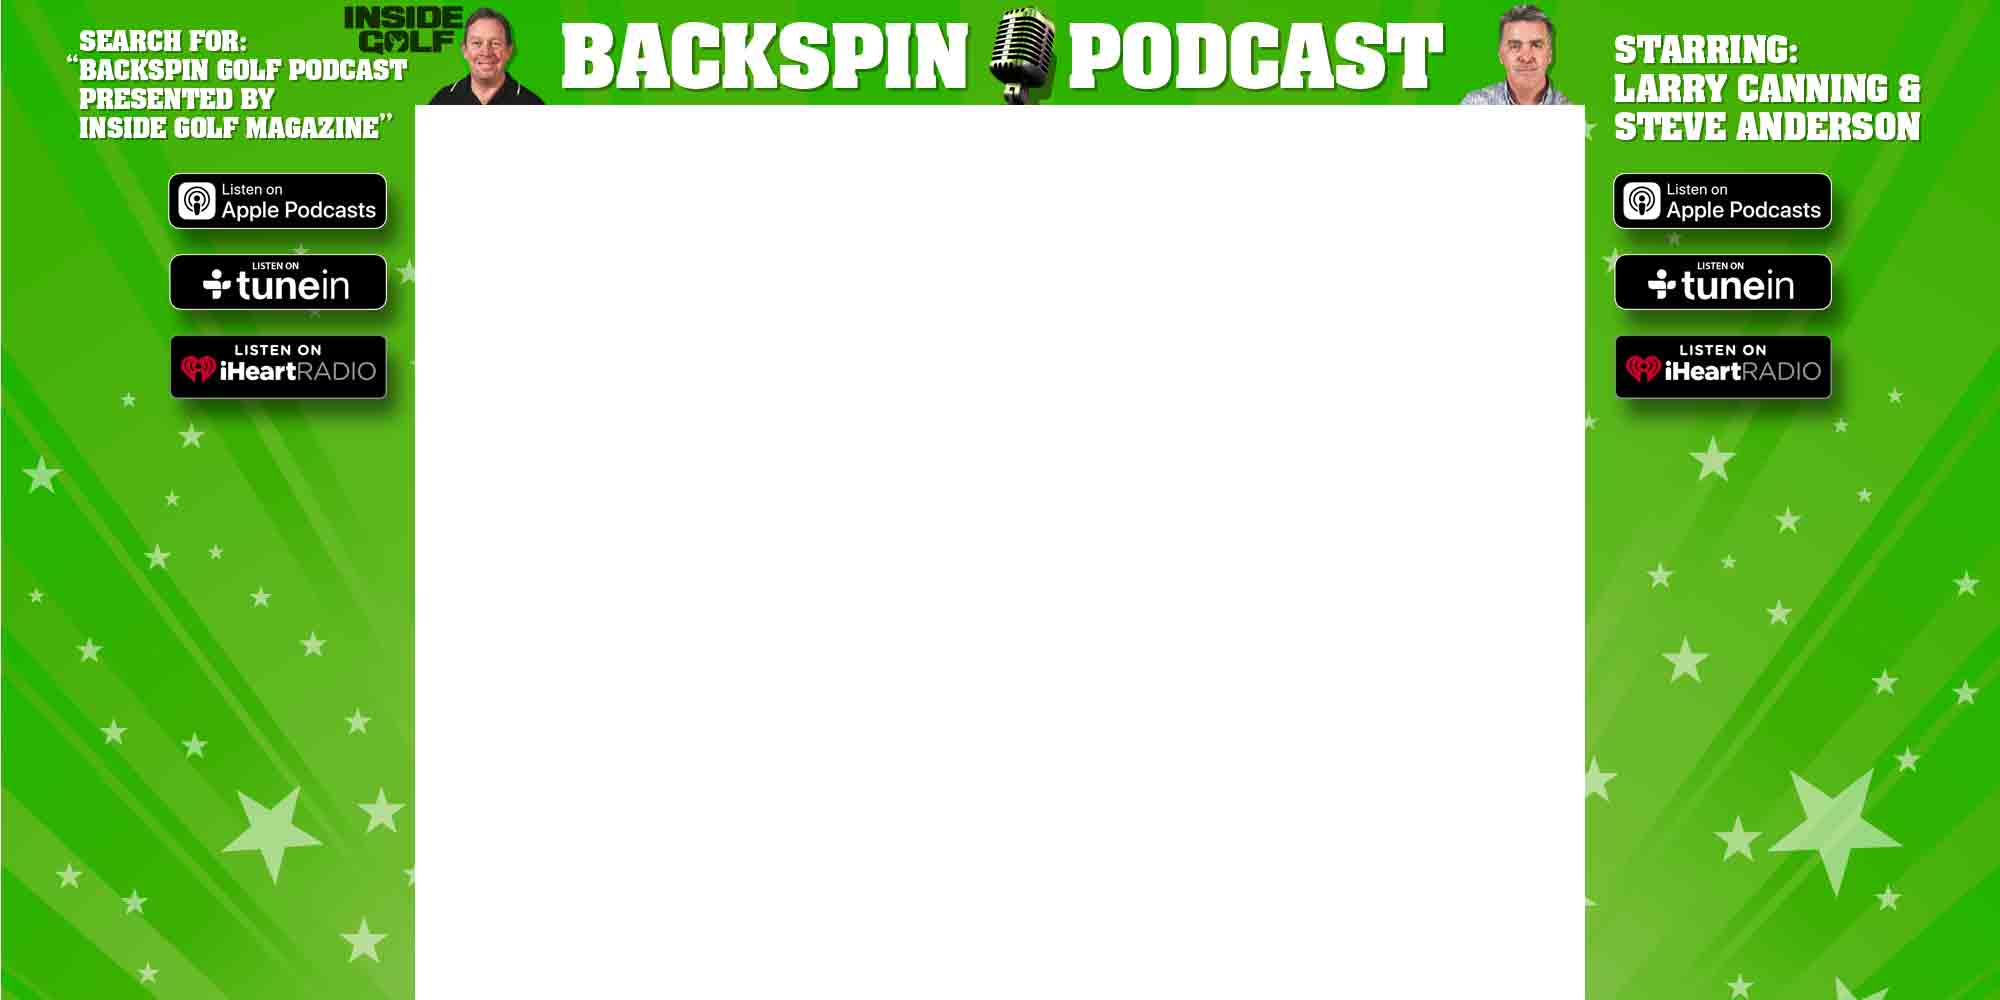 Backspin-Podcast-Site-Takeover-Background